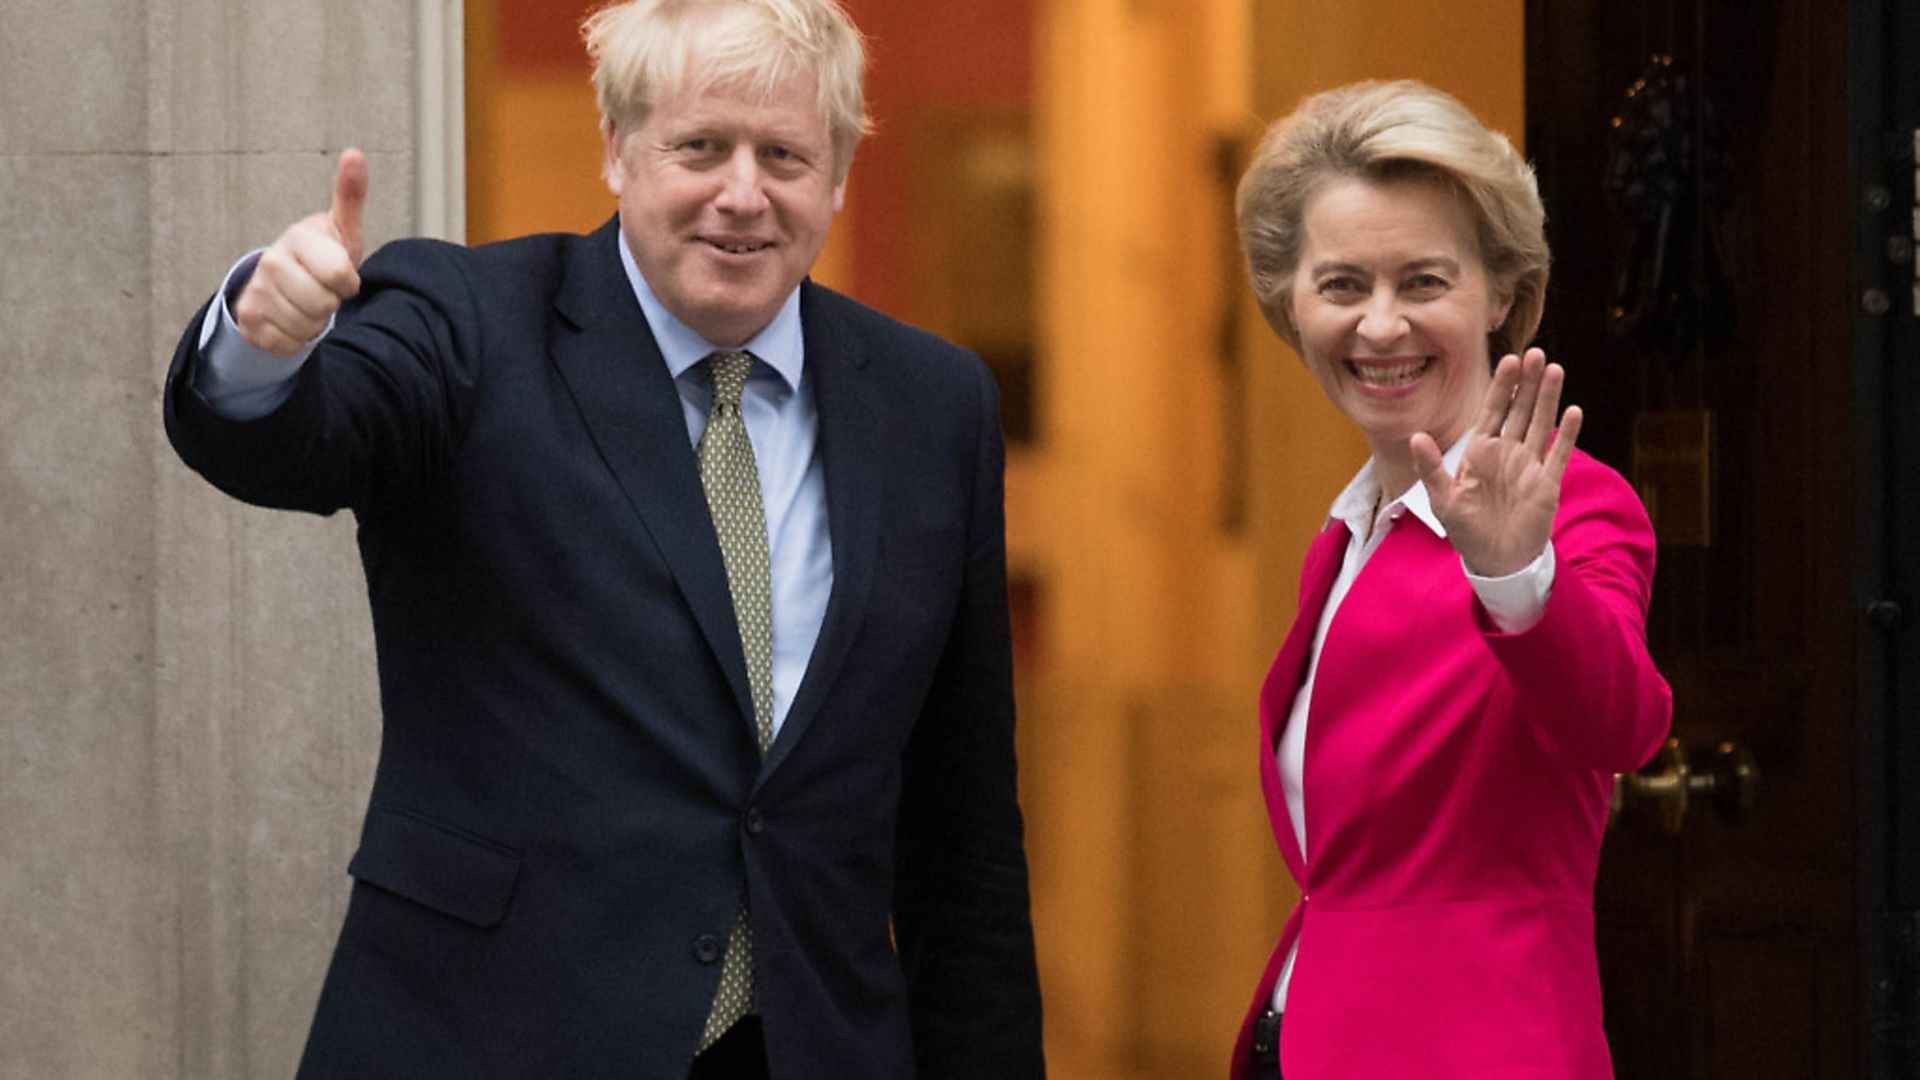 Prime Minister Boris Johnson greets EU Commission president Ursula von der Leyen ahead of a meeting in Downing Street. Photograph: Stefan Rousseau/PA. - Credit: PA